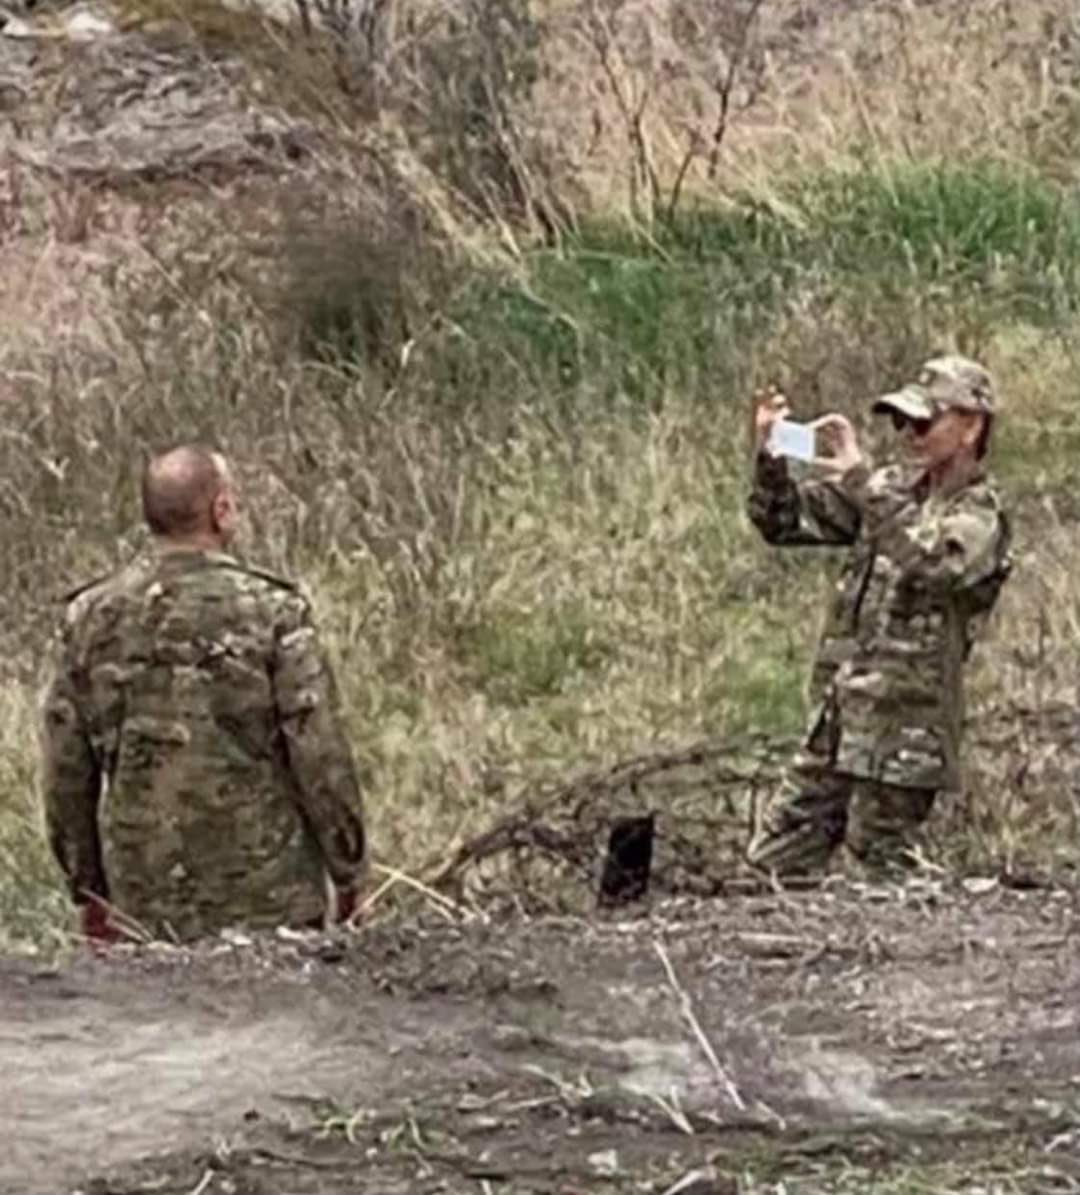 IRGC Releases Alleged Photo of Azerbaijani President In Sniper's Sights, Iran Says Presence Of Militants In Karabakh Unacceptable